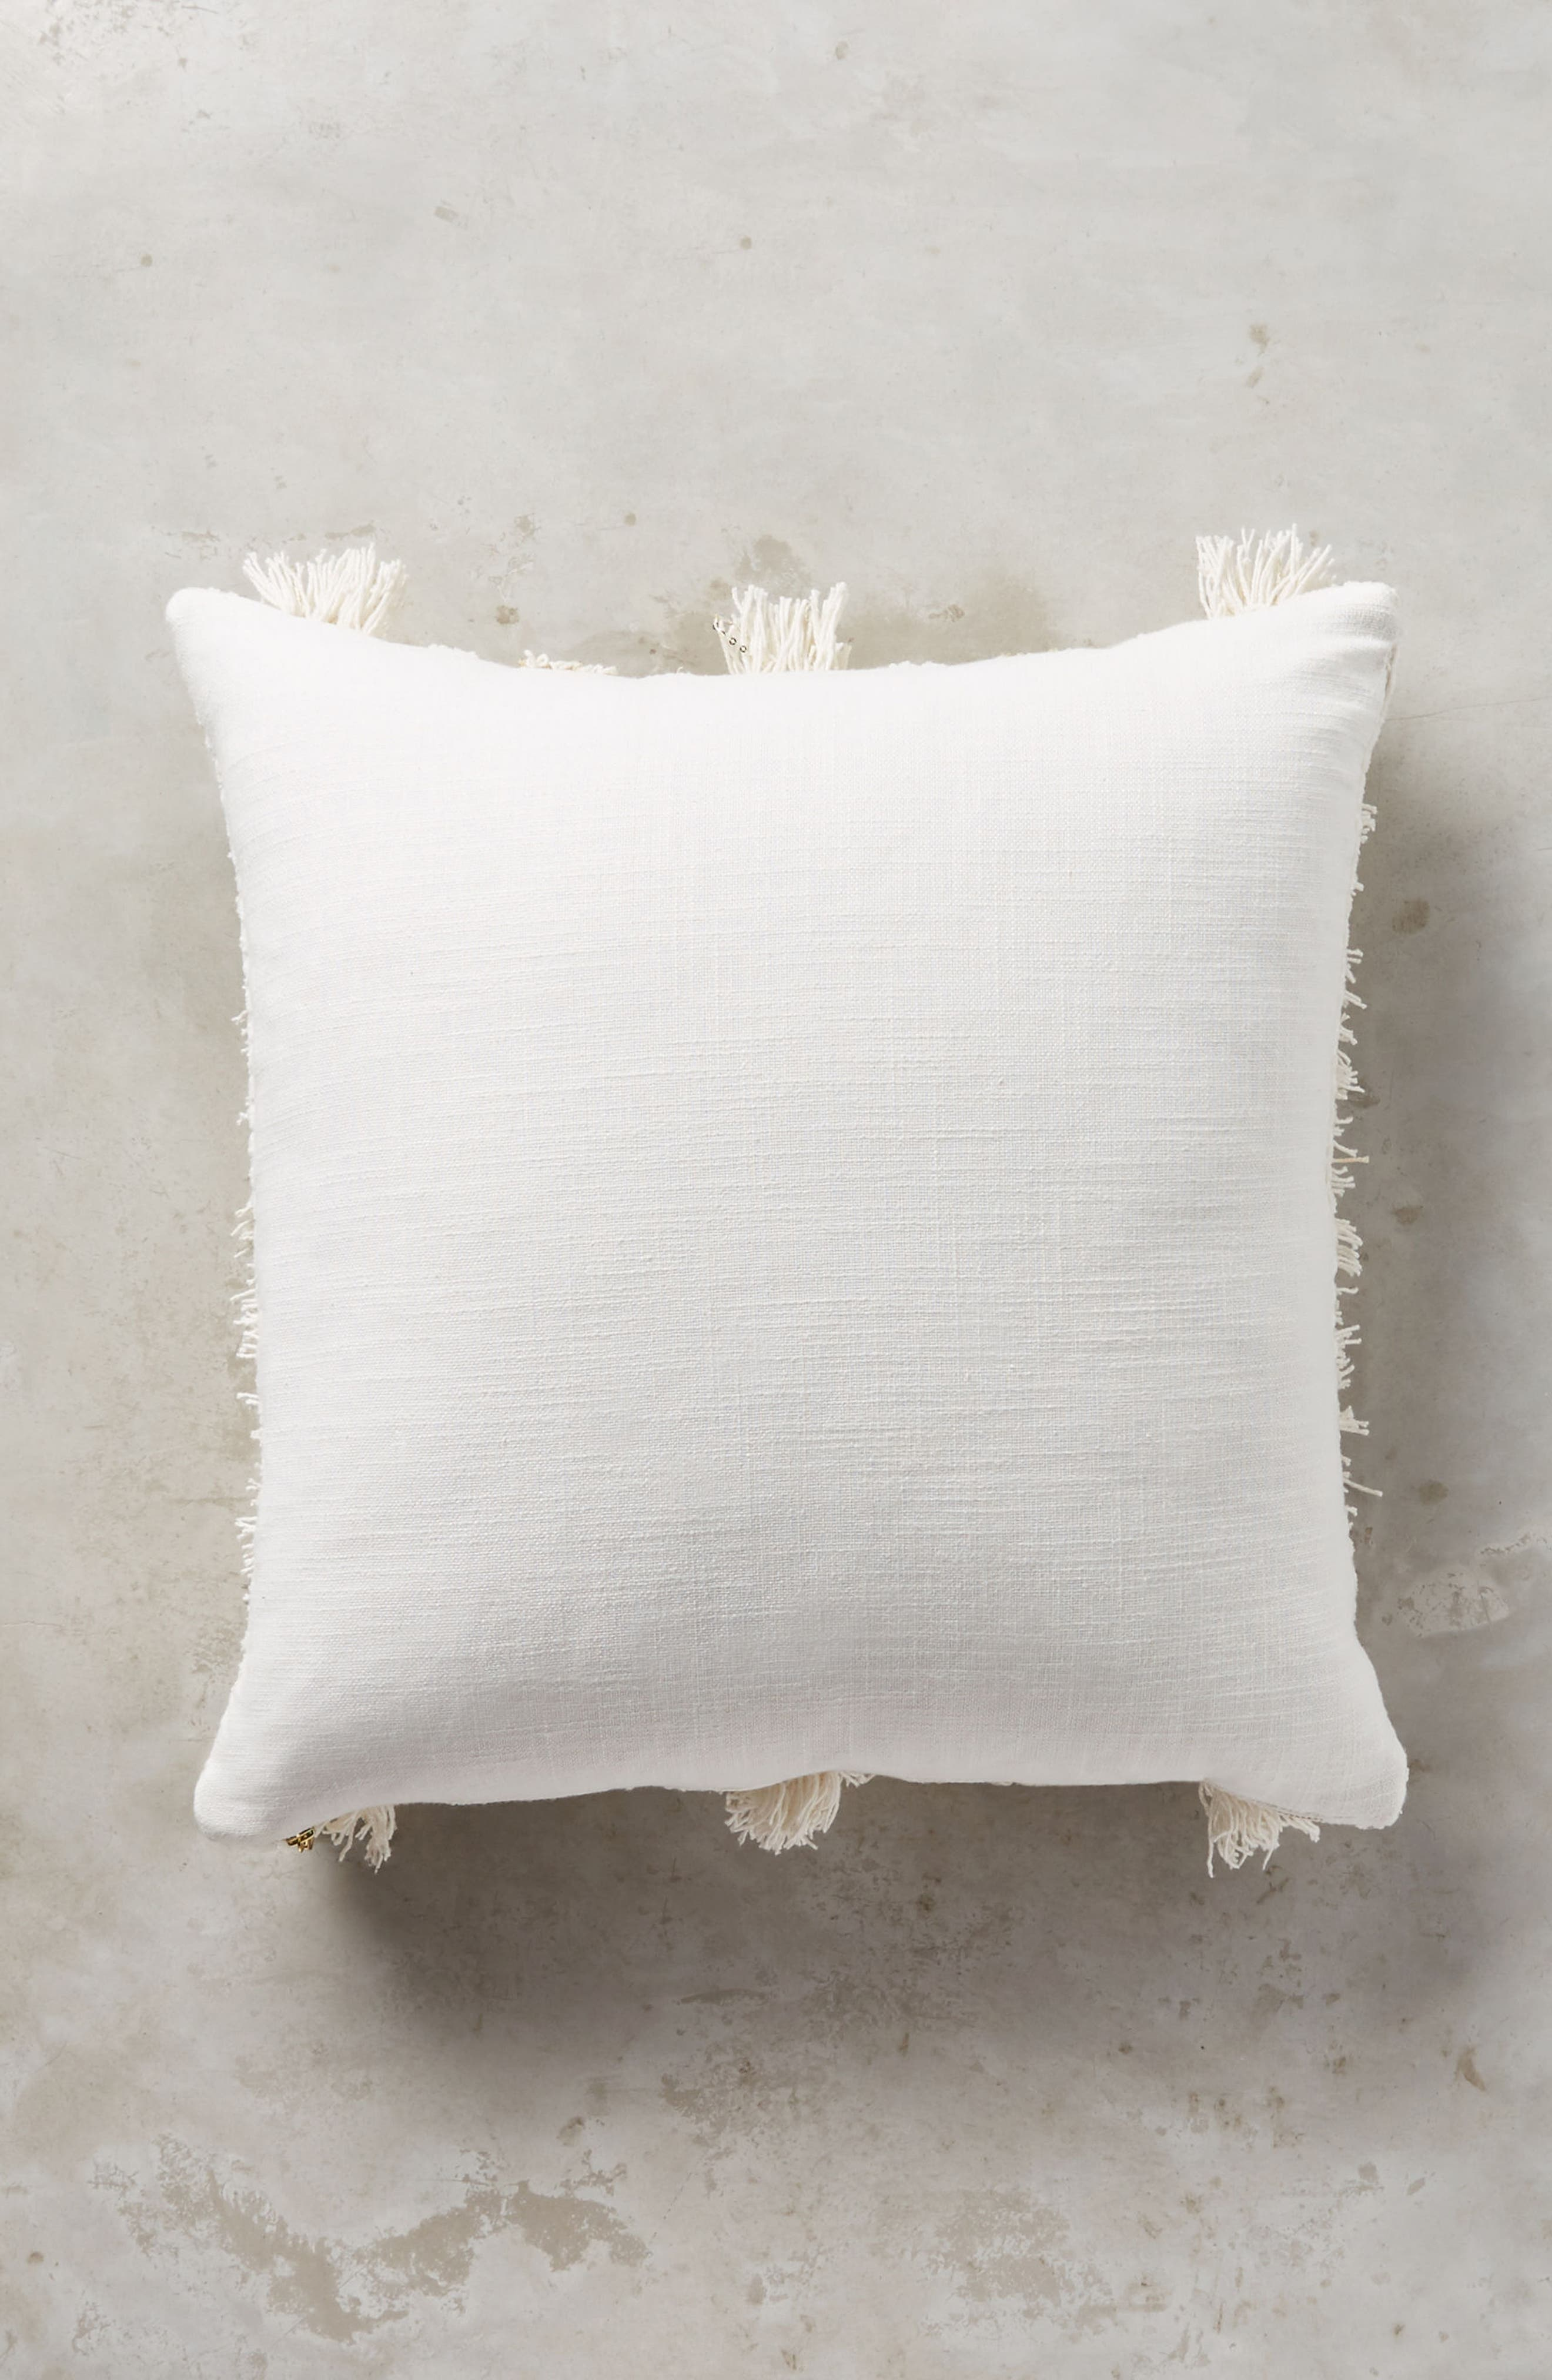 Indira Accent Pillow,                             Alternate thumbnail 2, color,                             White/ Ivory